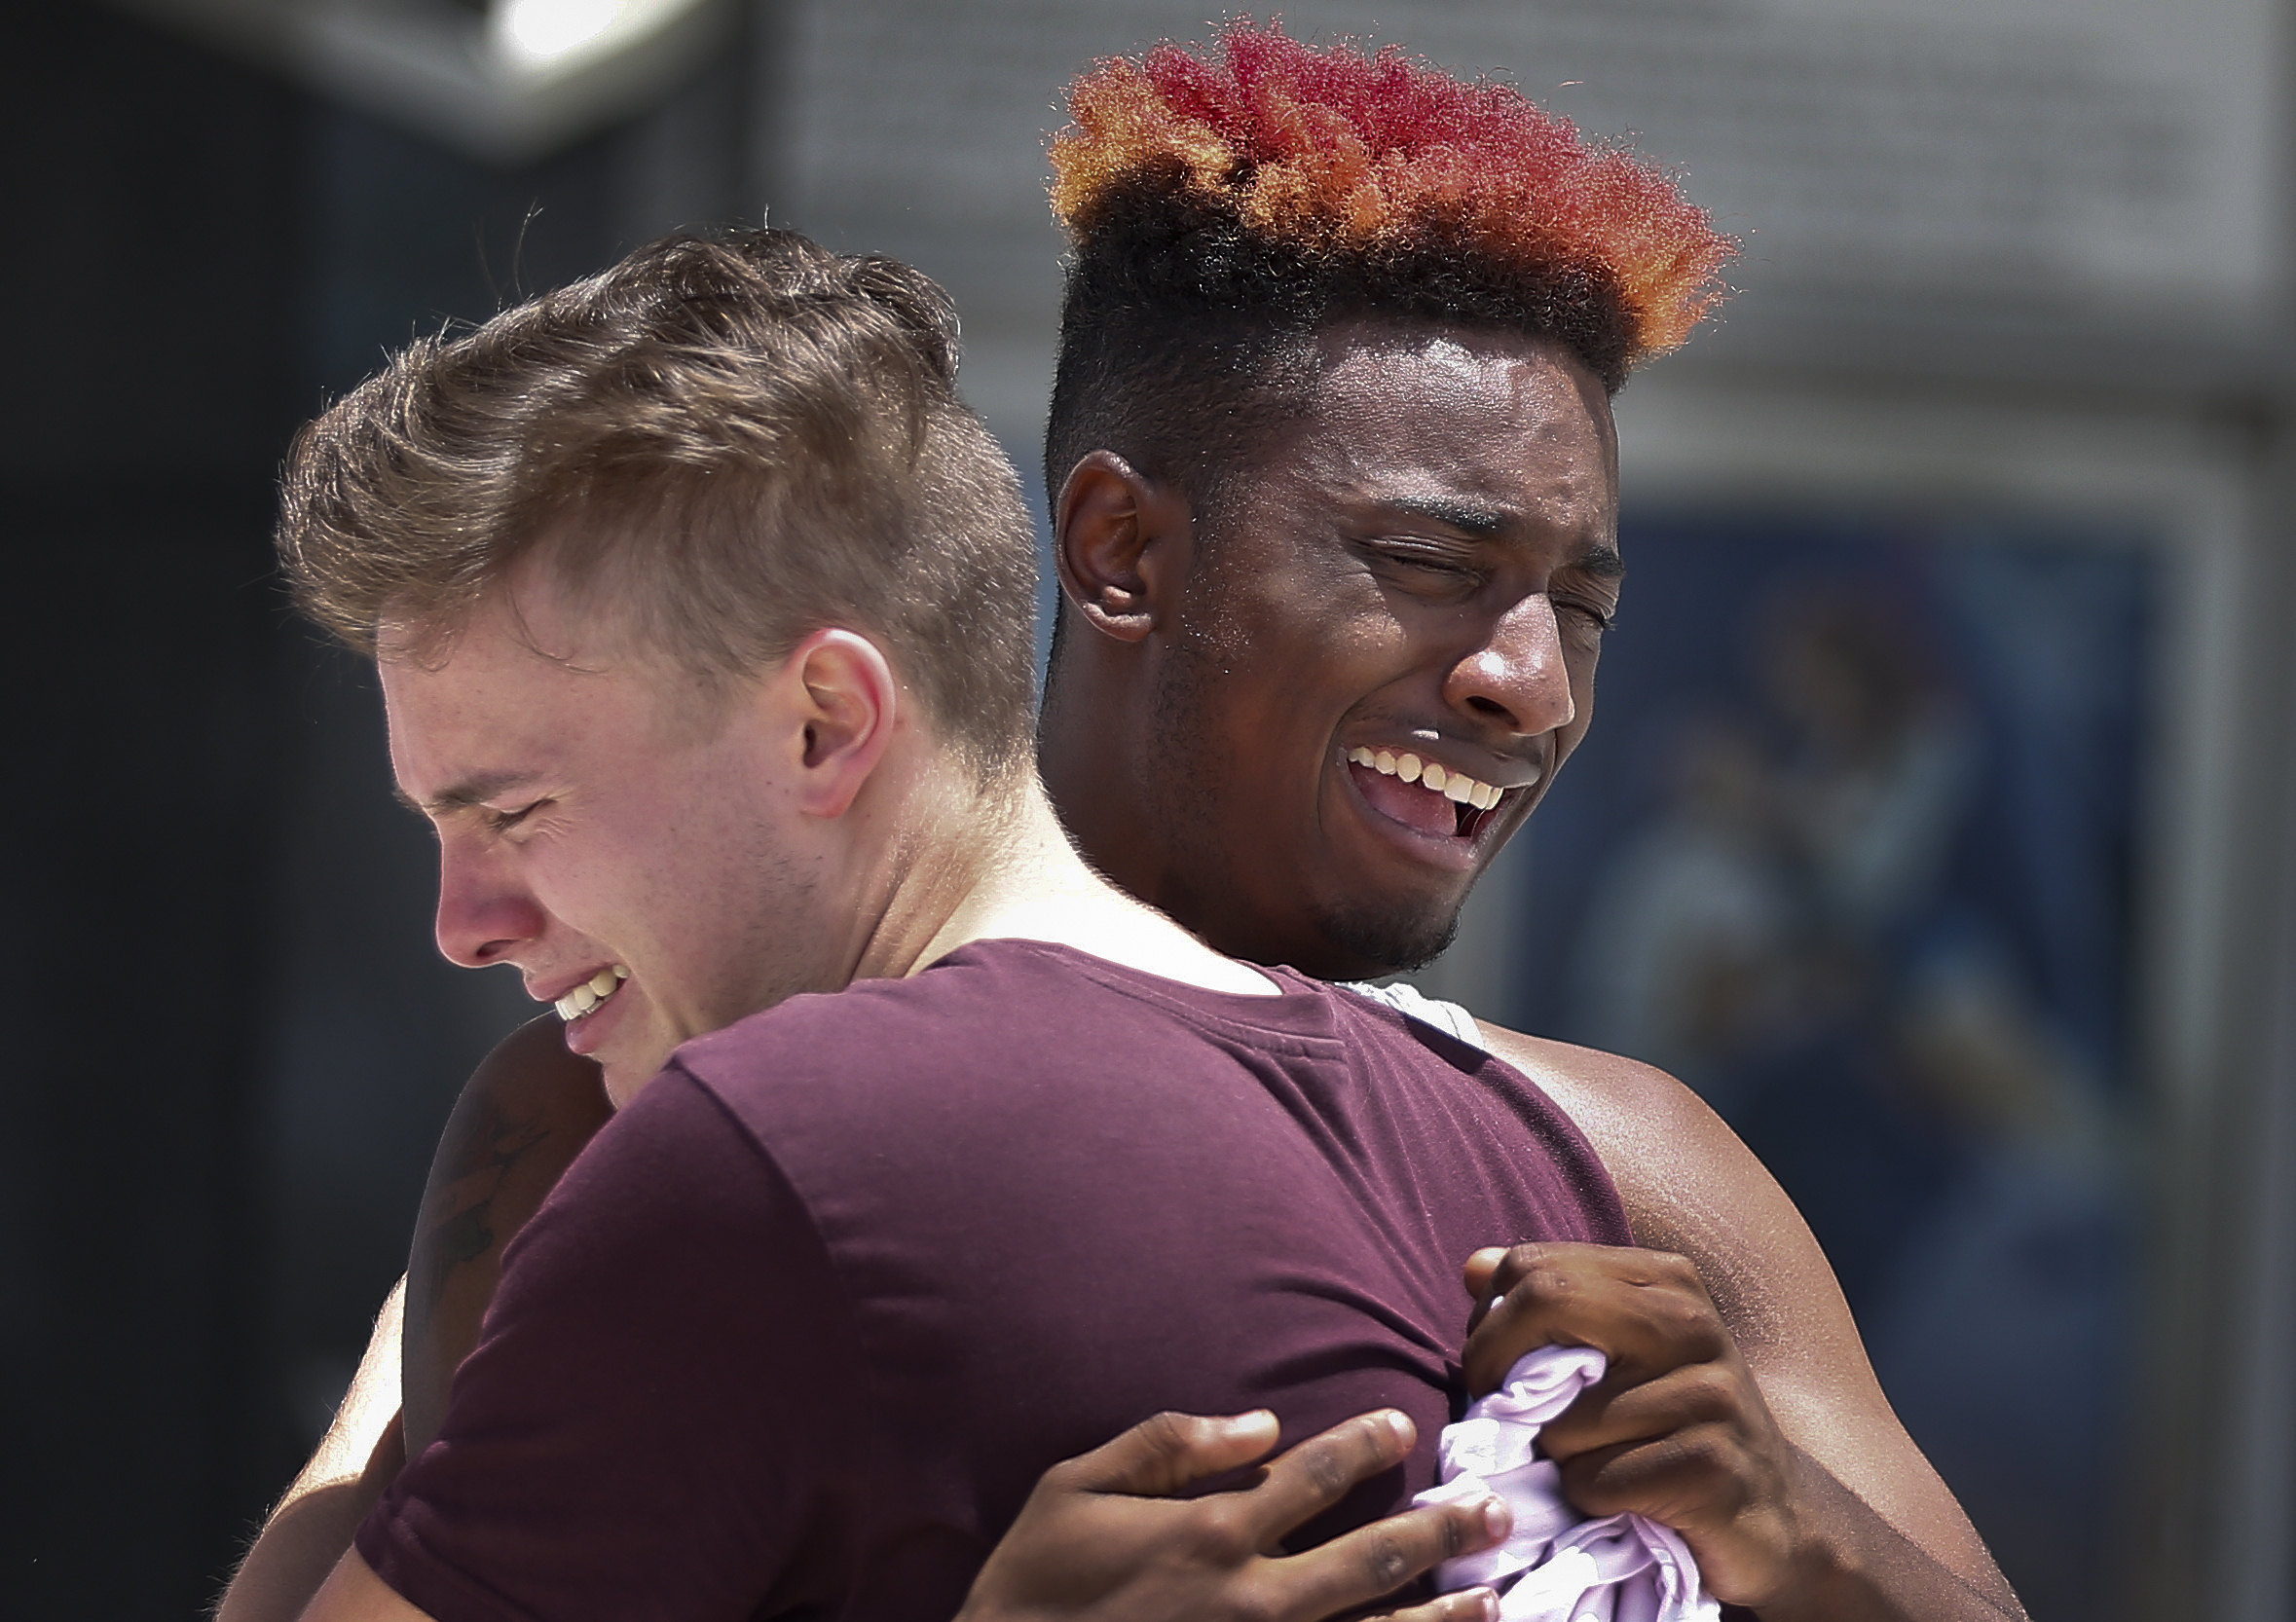 <div class='meta'><div class='origin-logo' data-origin='AP'></div><span class='caption-text' data-credit='AP'>D Bouey, 21, of Orlando, Fla., right, cries with his friend after a memorial for the rapper, XXXTentacion, Wednesday, June 27, 2018, in Sunrise, Fla. (AP Photo/Brynn Anderson)</span></div>